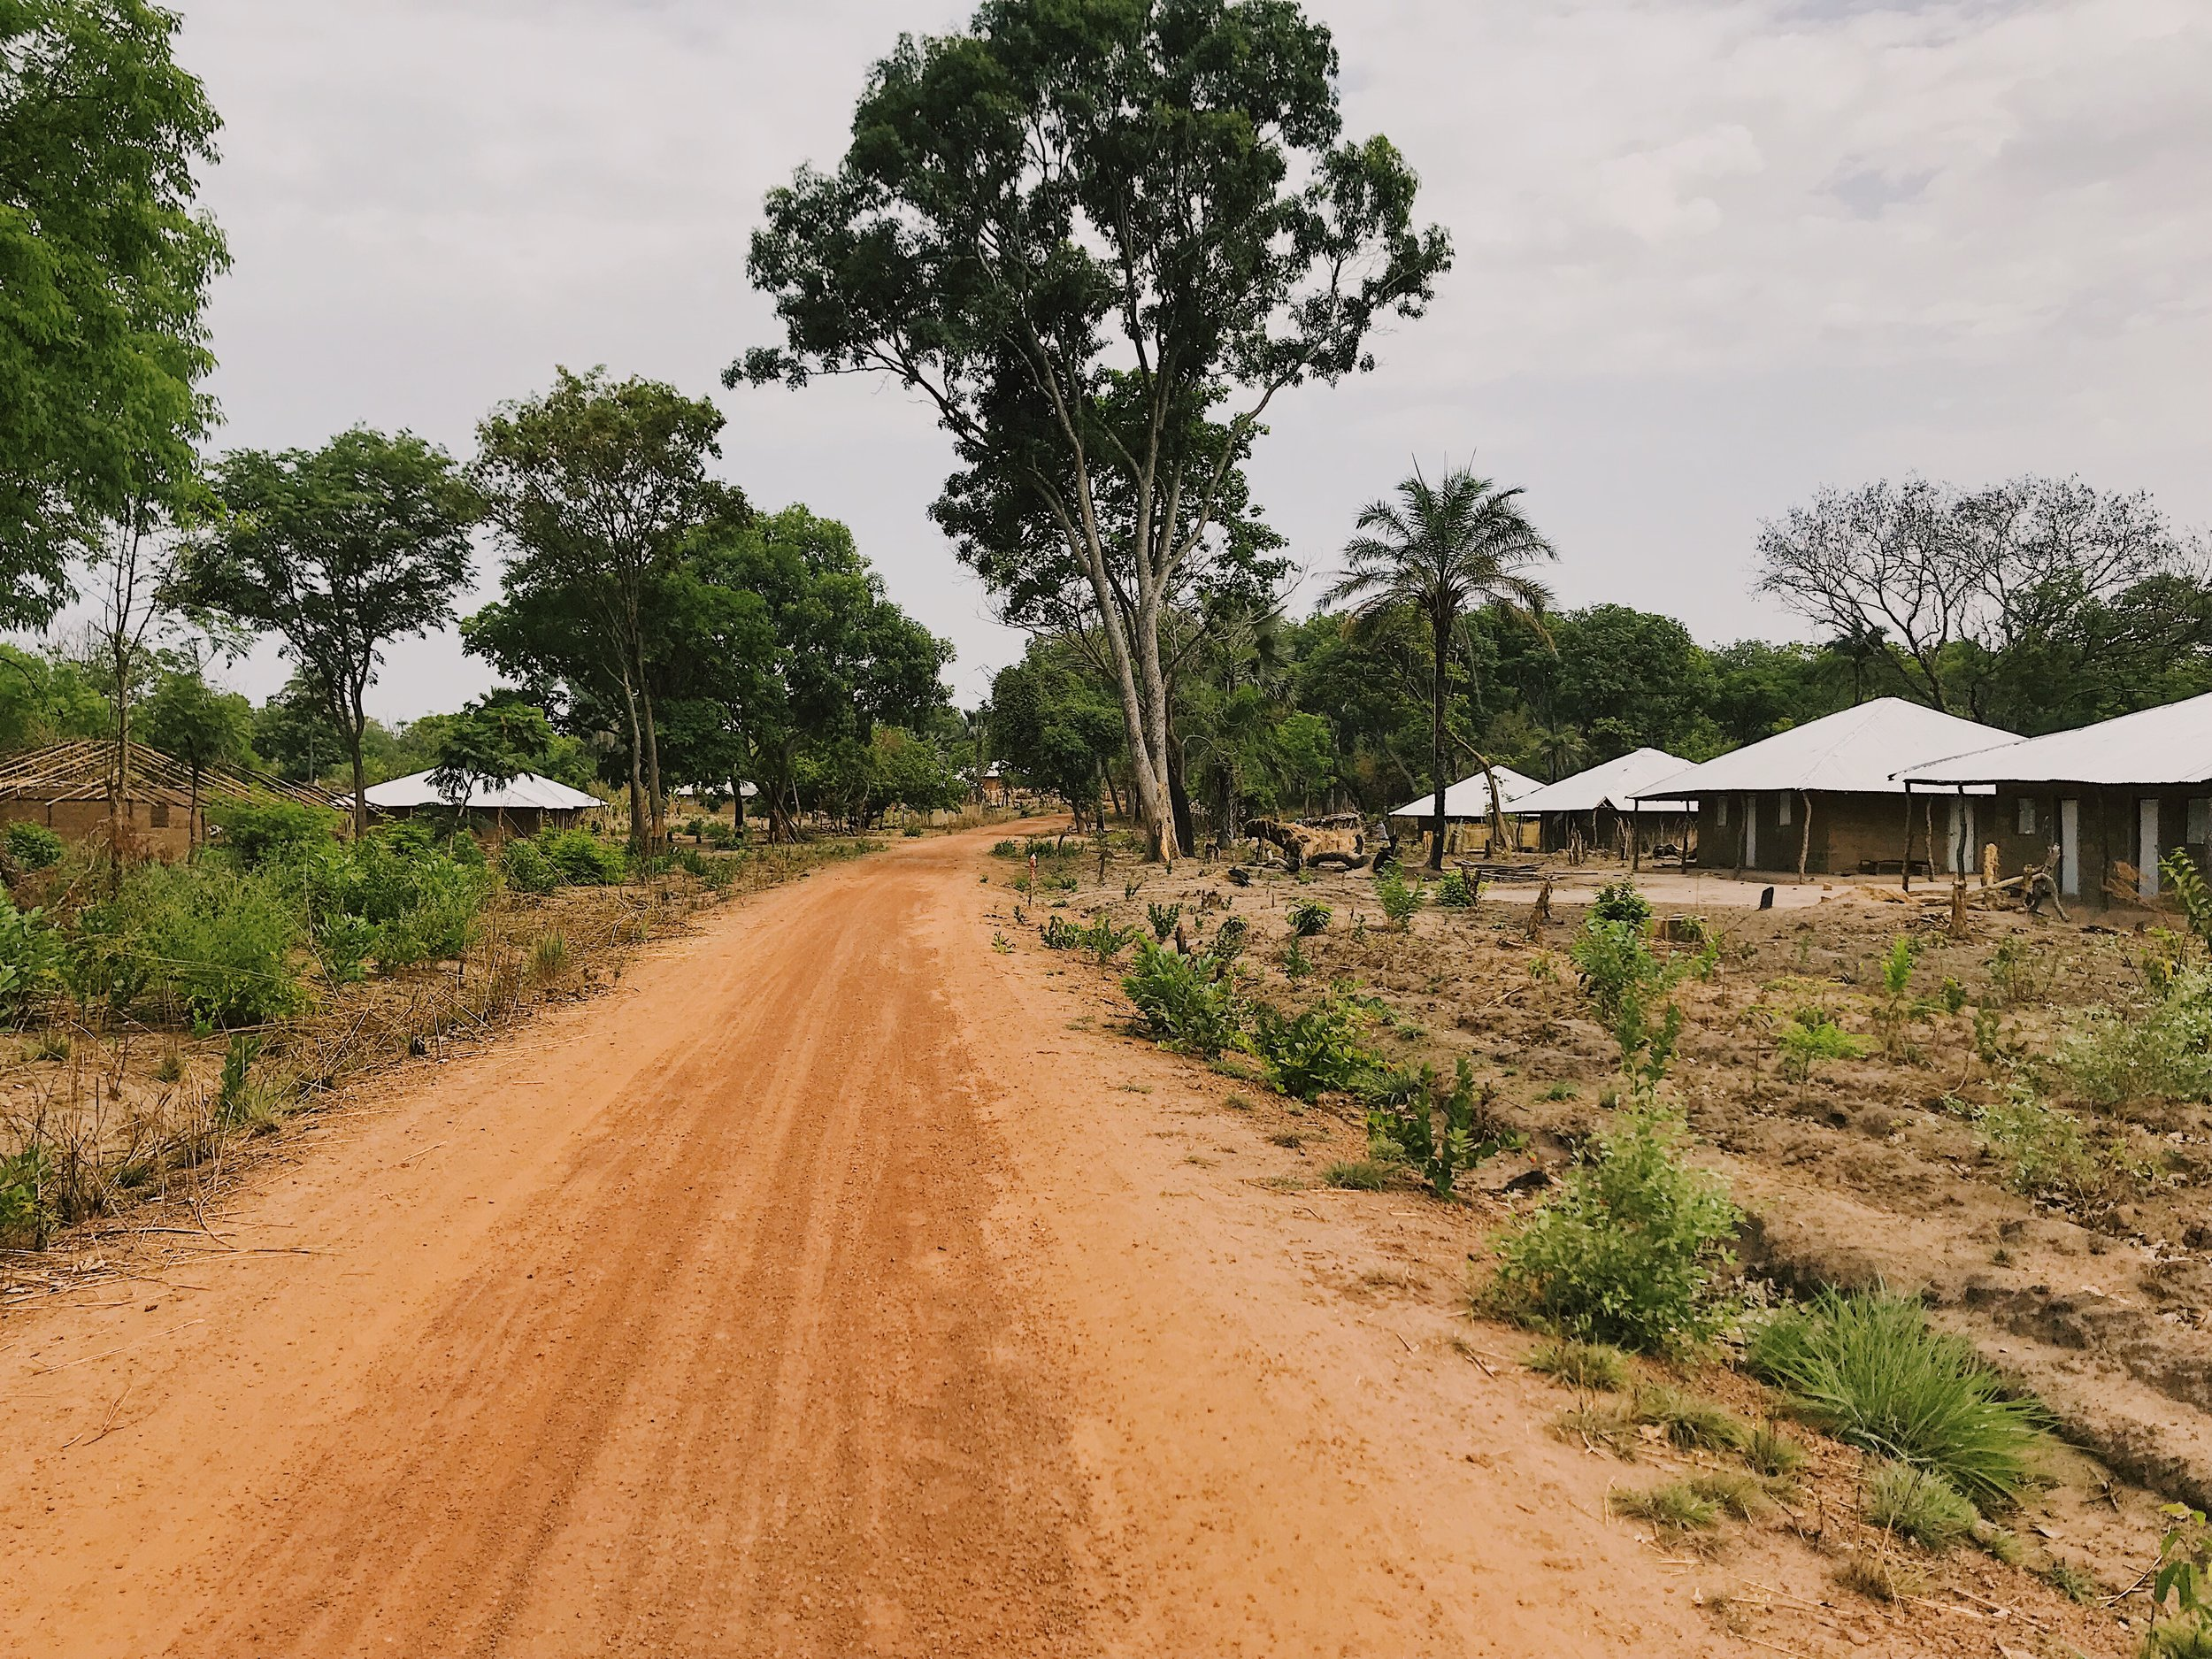 Rebuilt homes and roads in Casamance Region